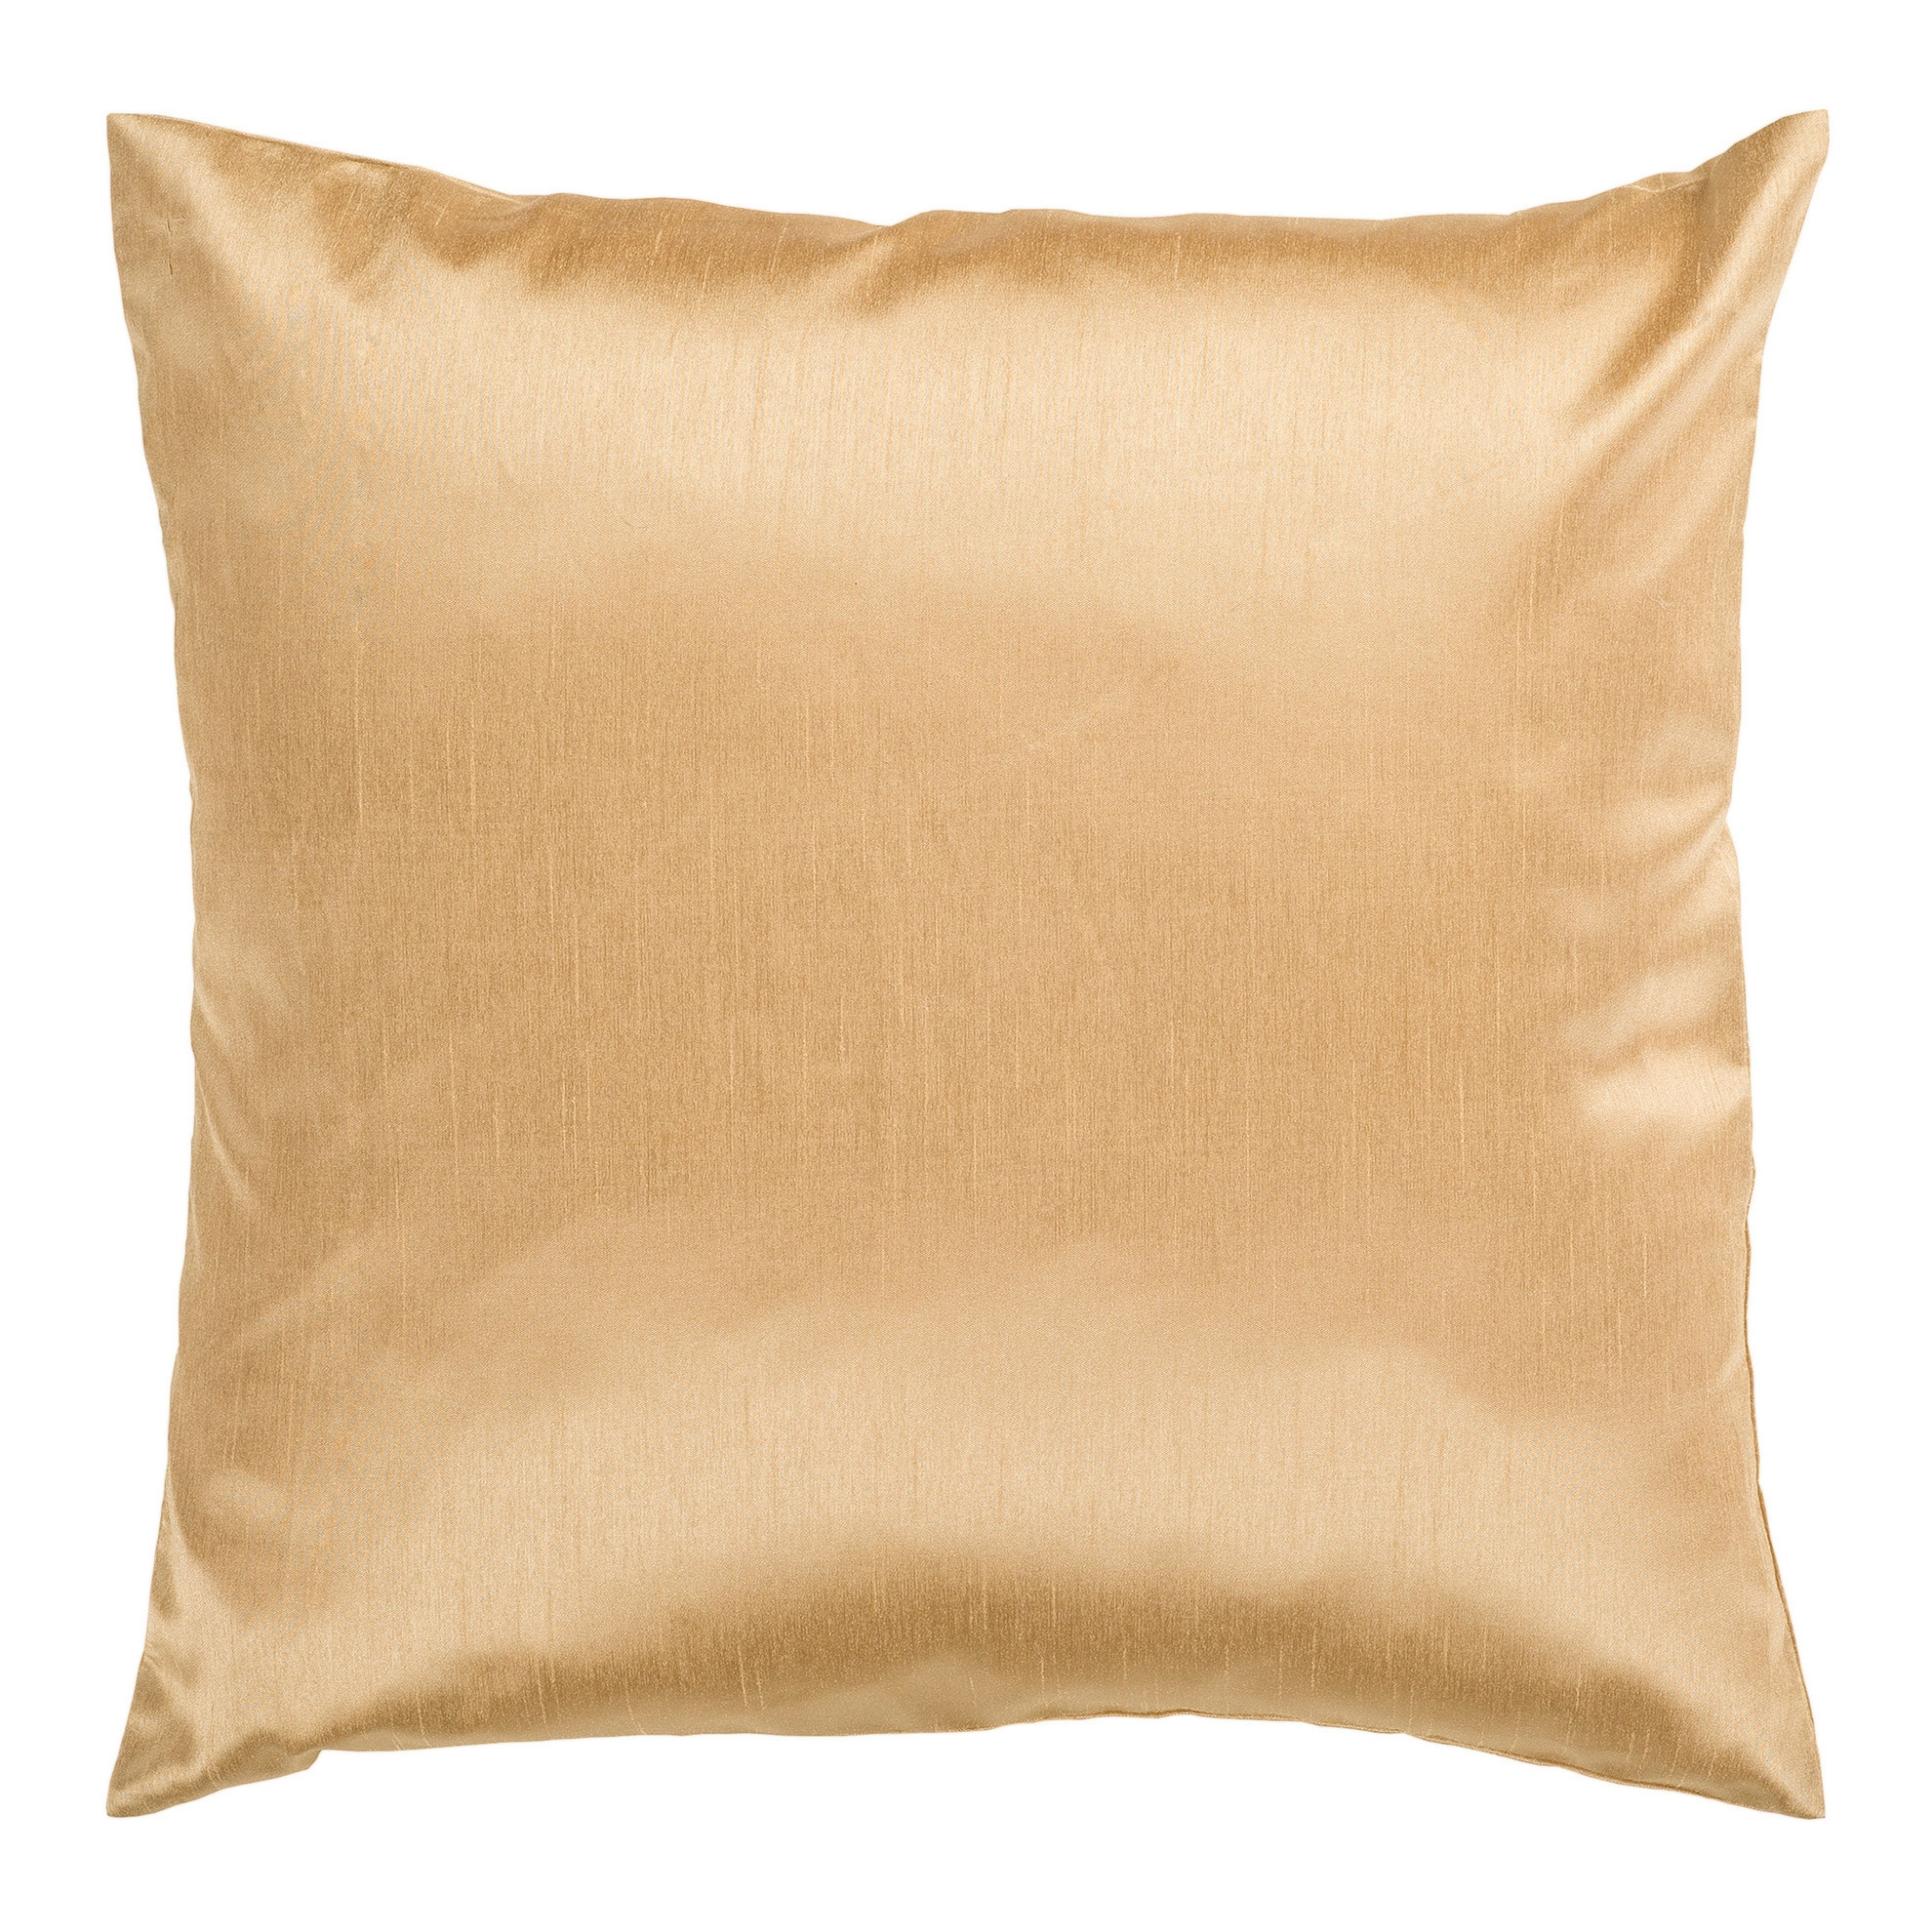 Decorative Chic Removable Cover 18-inch Square Solid Throw Pillow ...